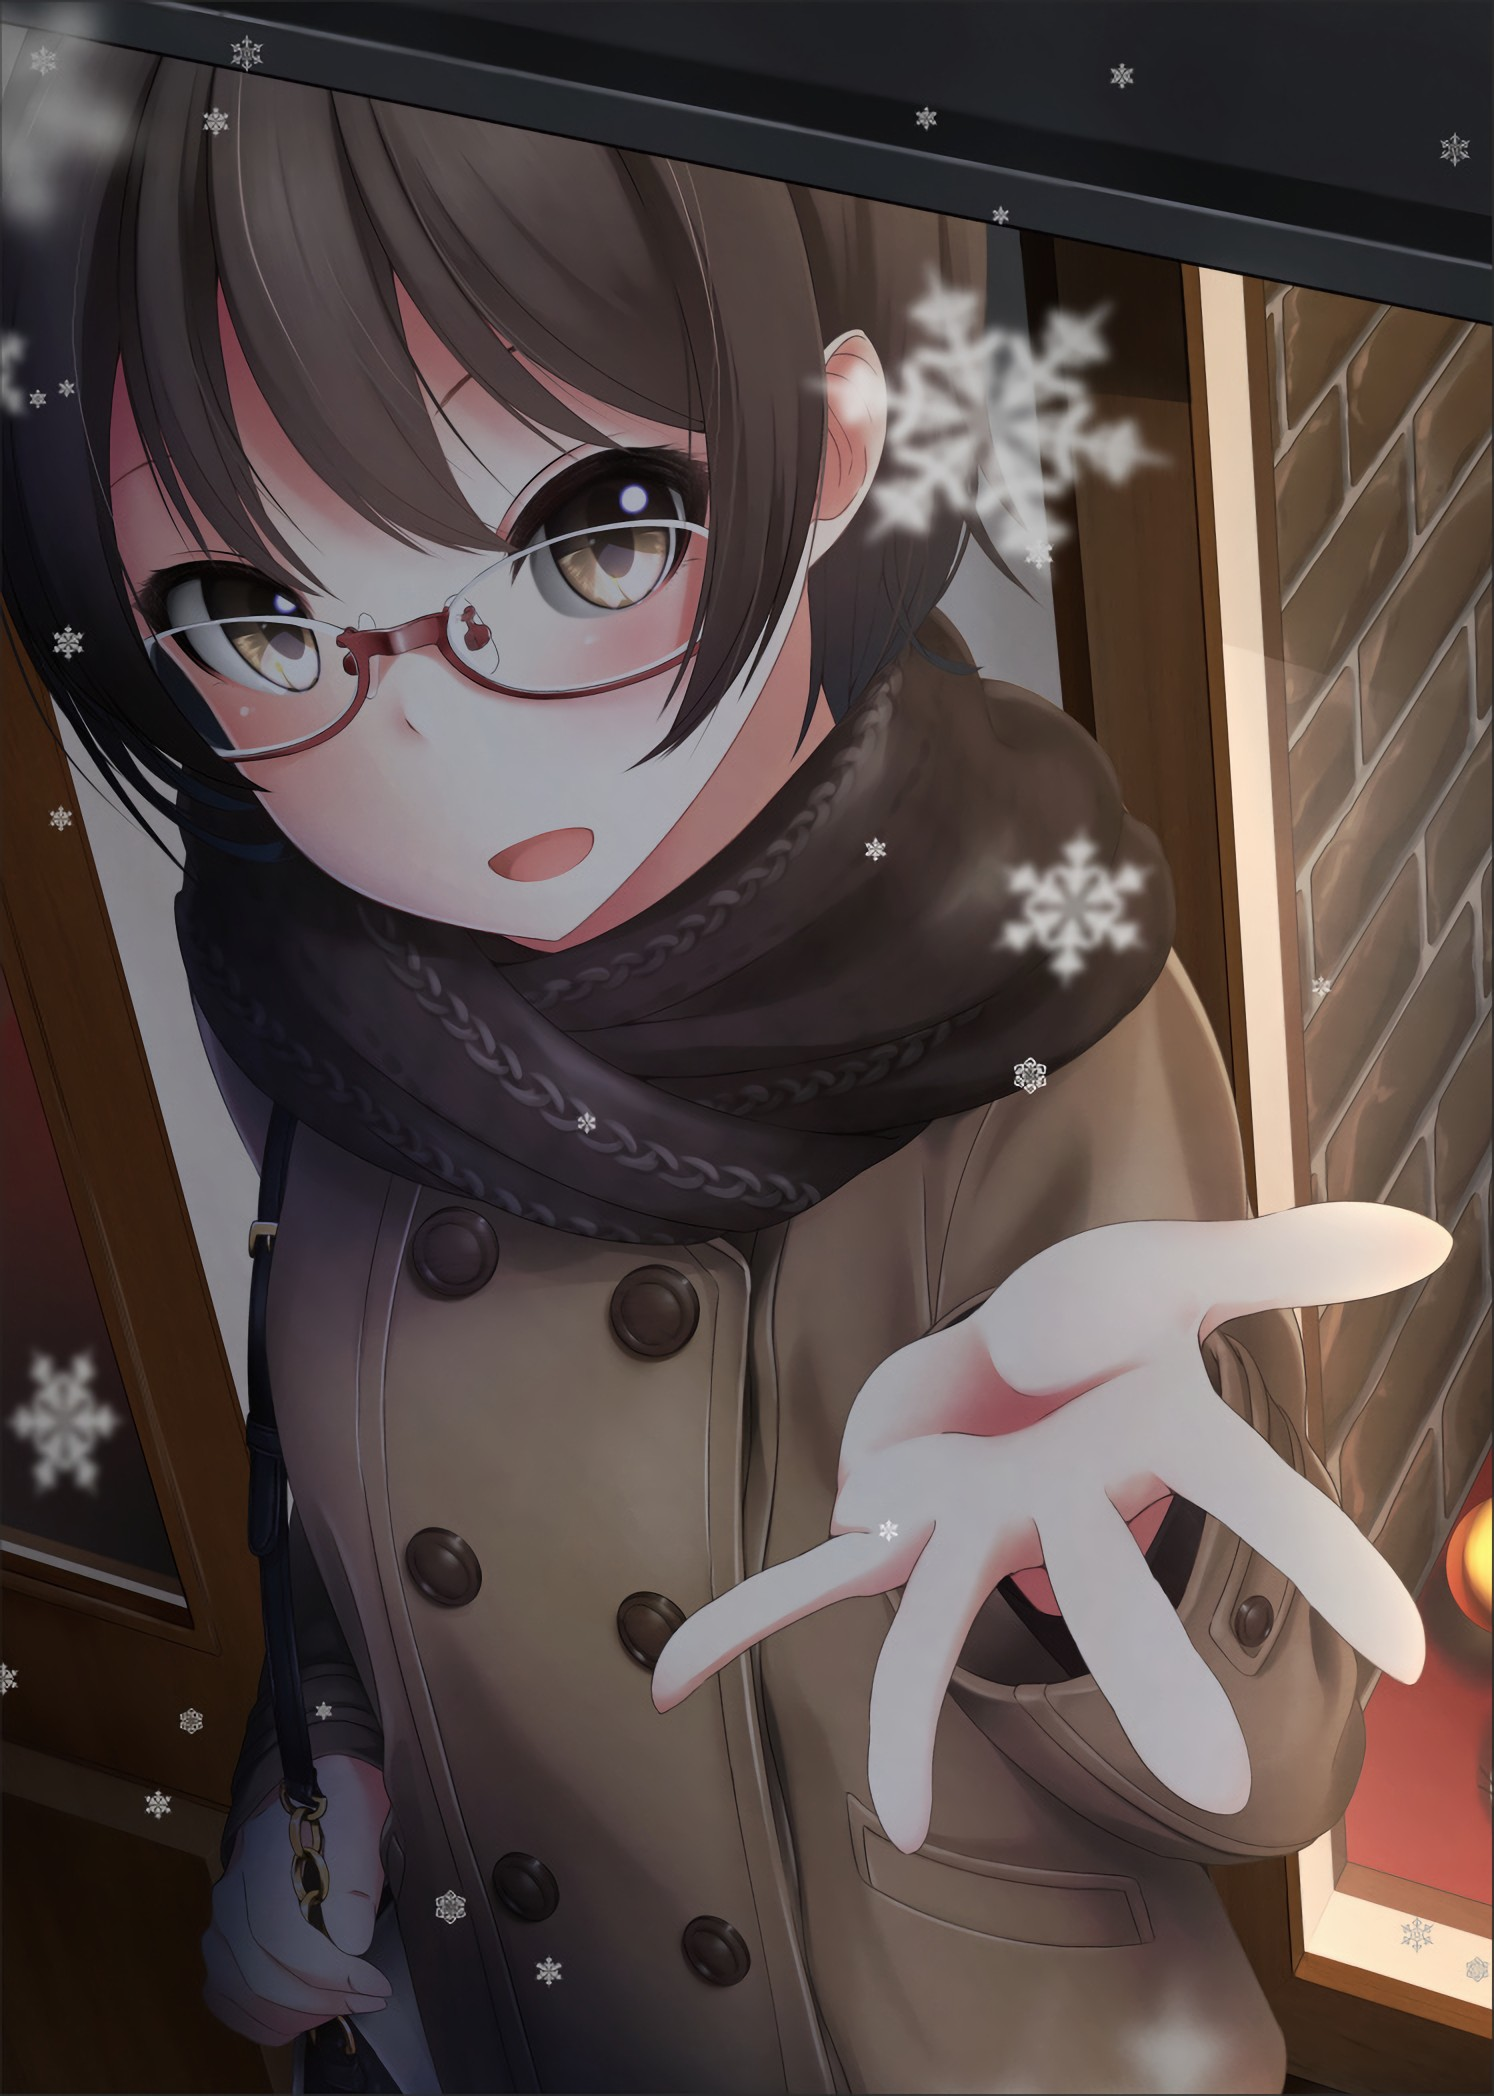 Anime girl with short hair and glasses